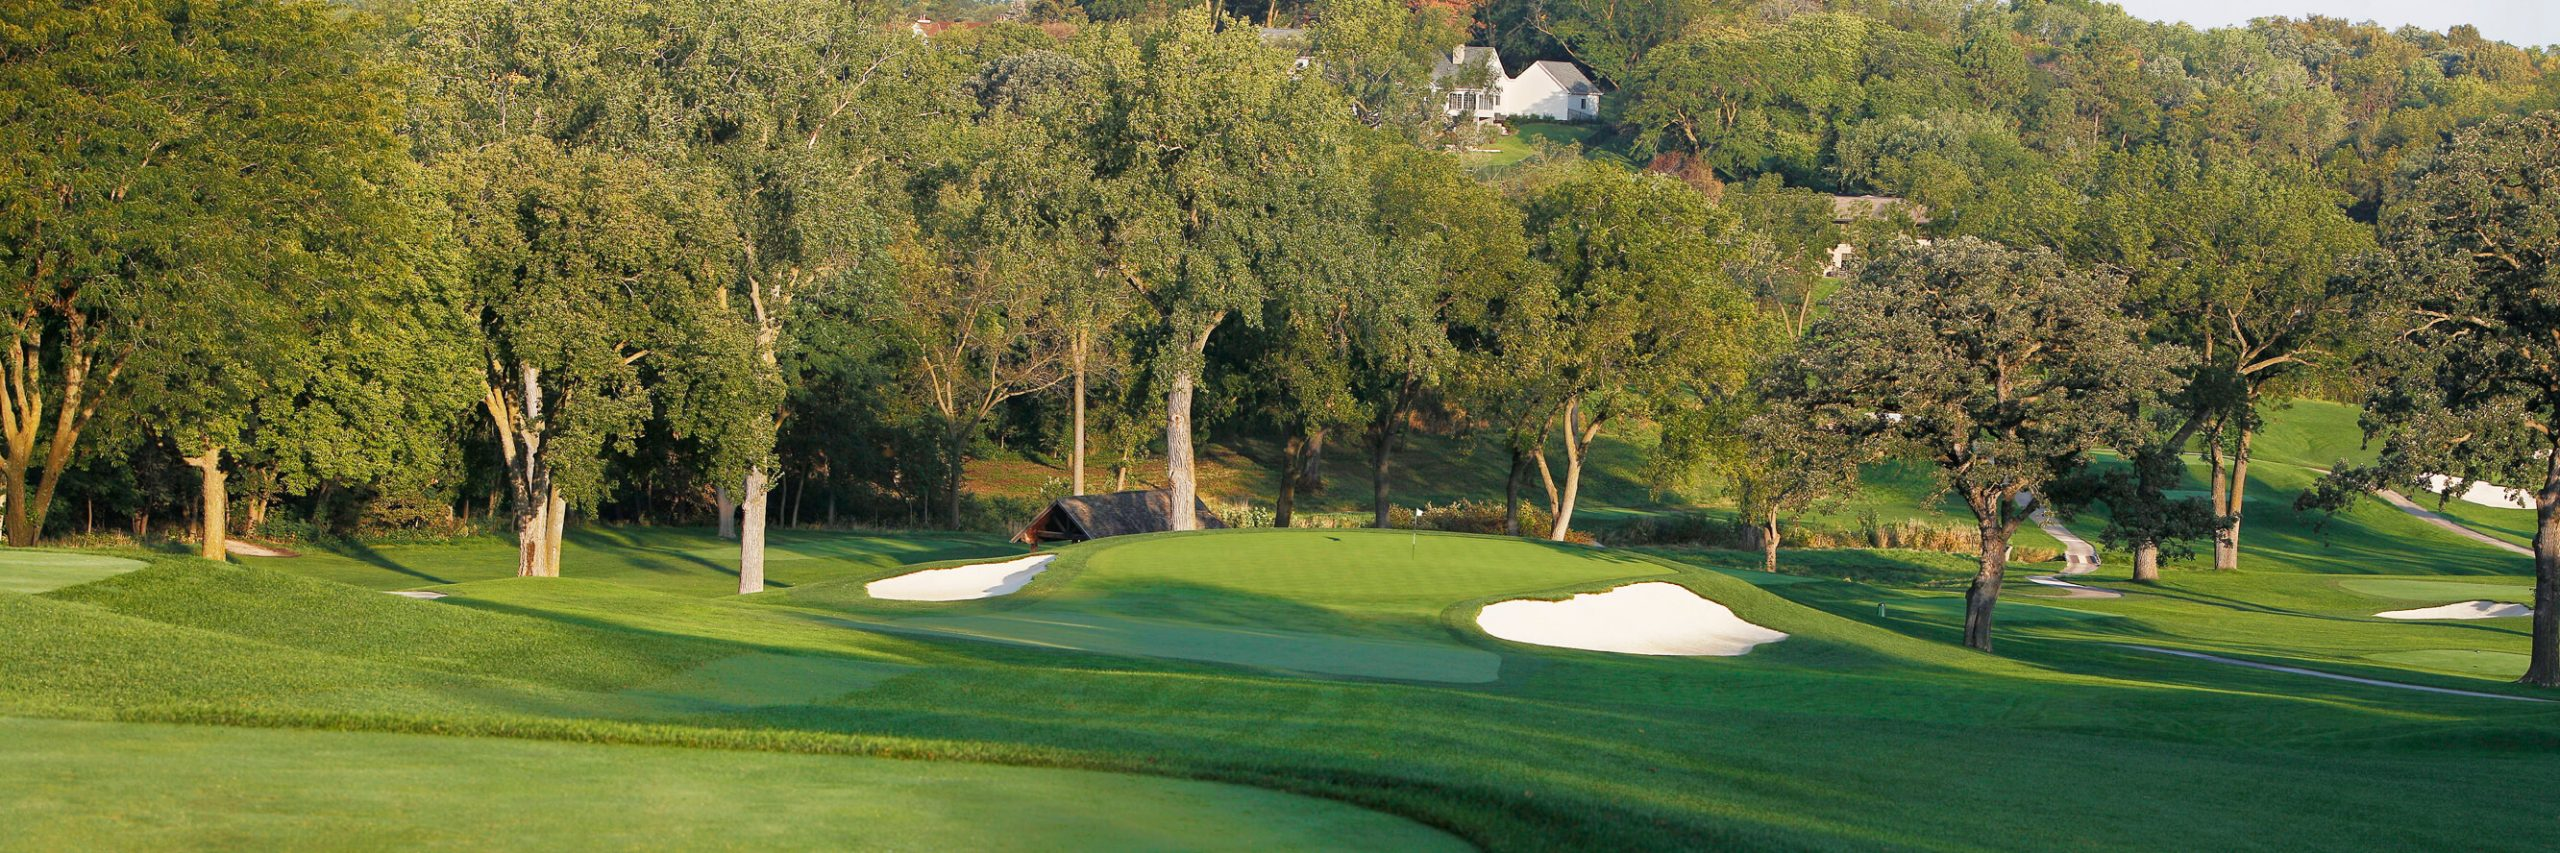 Golf Course Image - Omaha Country Club No. 3